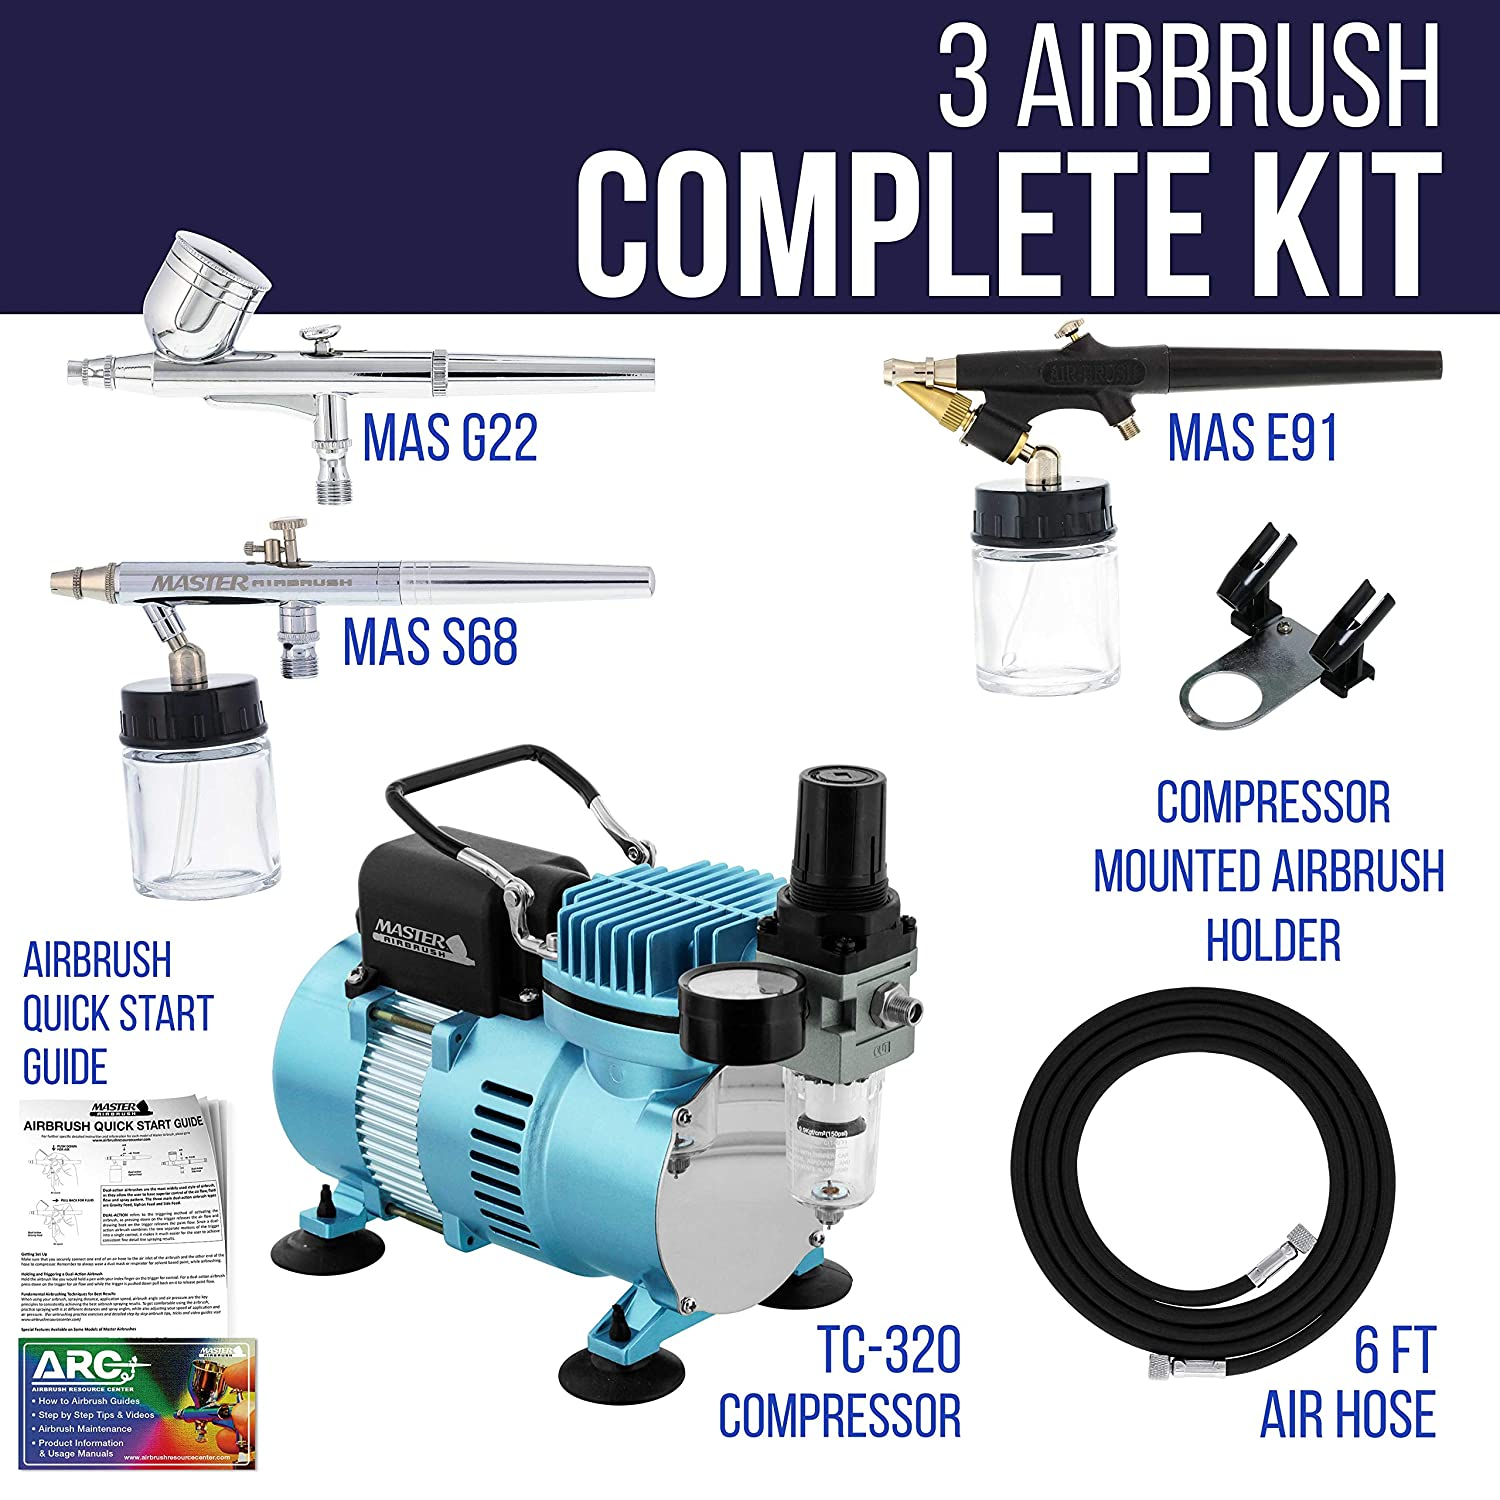 0.3 mm Gravity /& 0.35 How To Airbrush Learning Guide 0.8 mm Siphon Feed Master Airbrush Cool Runner II Dual Fan Air Compressor Professional Airbrushing System Kit with 3 Airbrush Sets Hose Holder